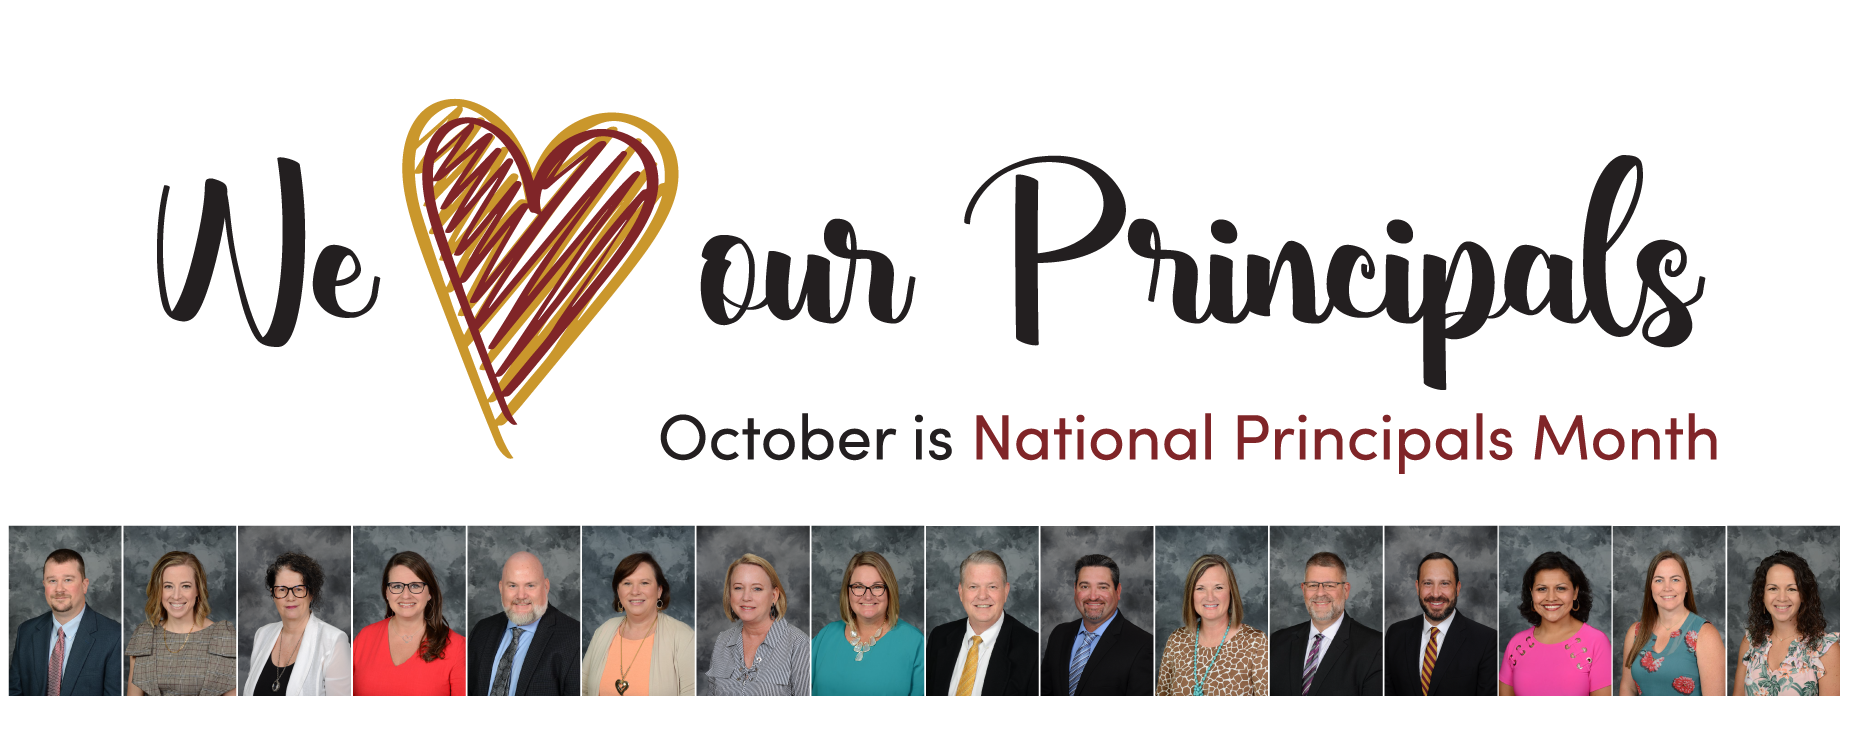 October is National Principals Month. We celebrate the dedication and work of our campus principals.